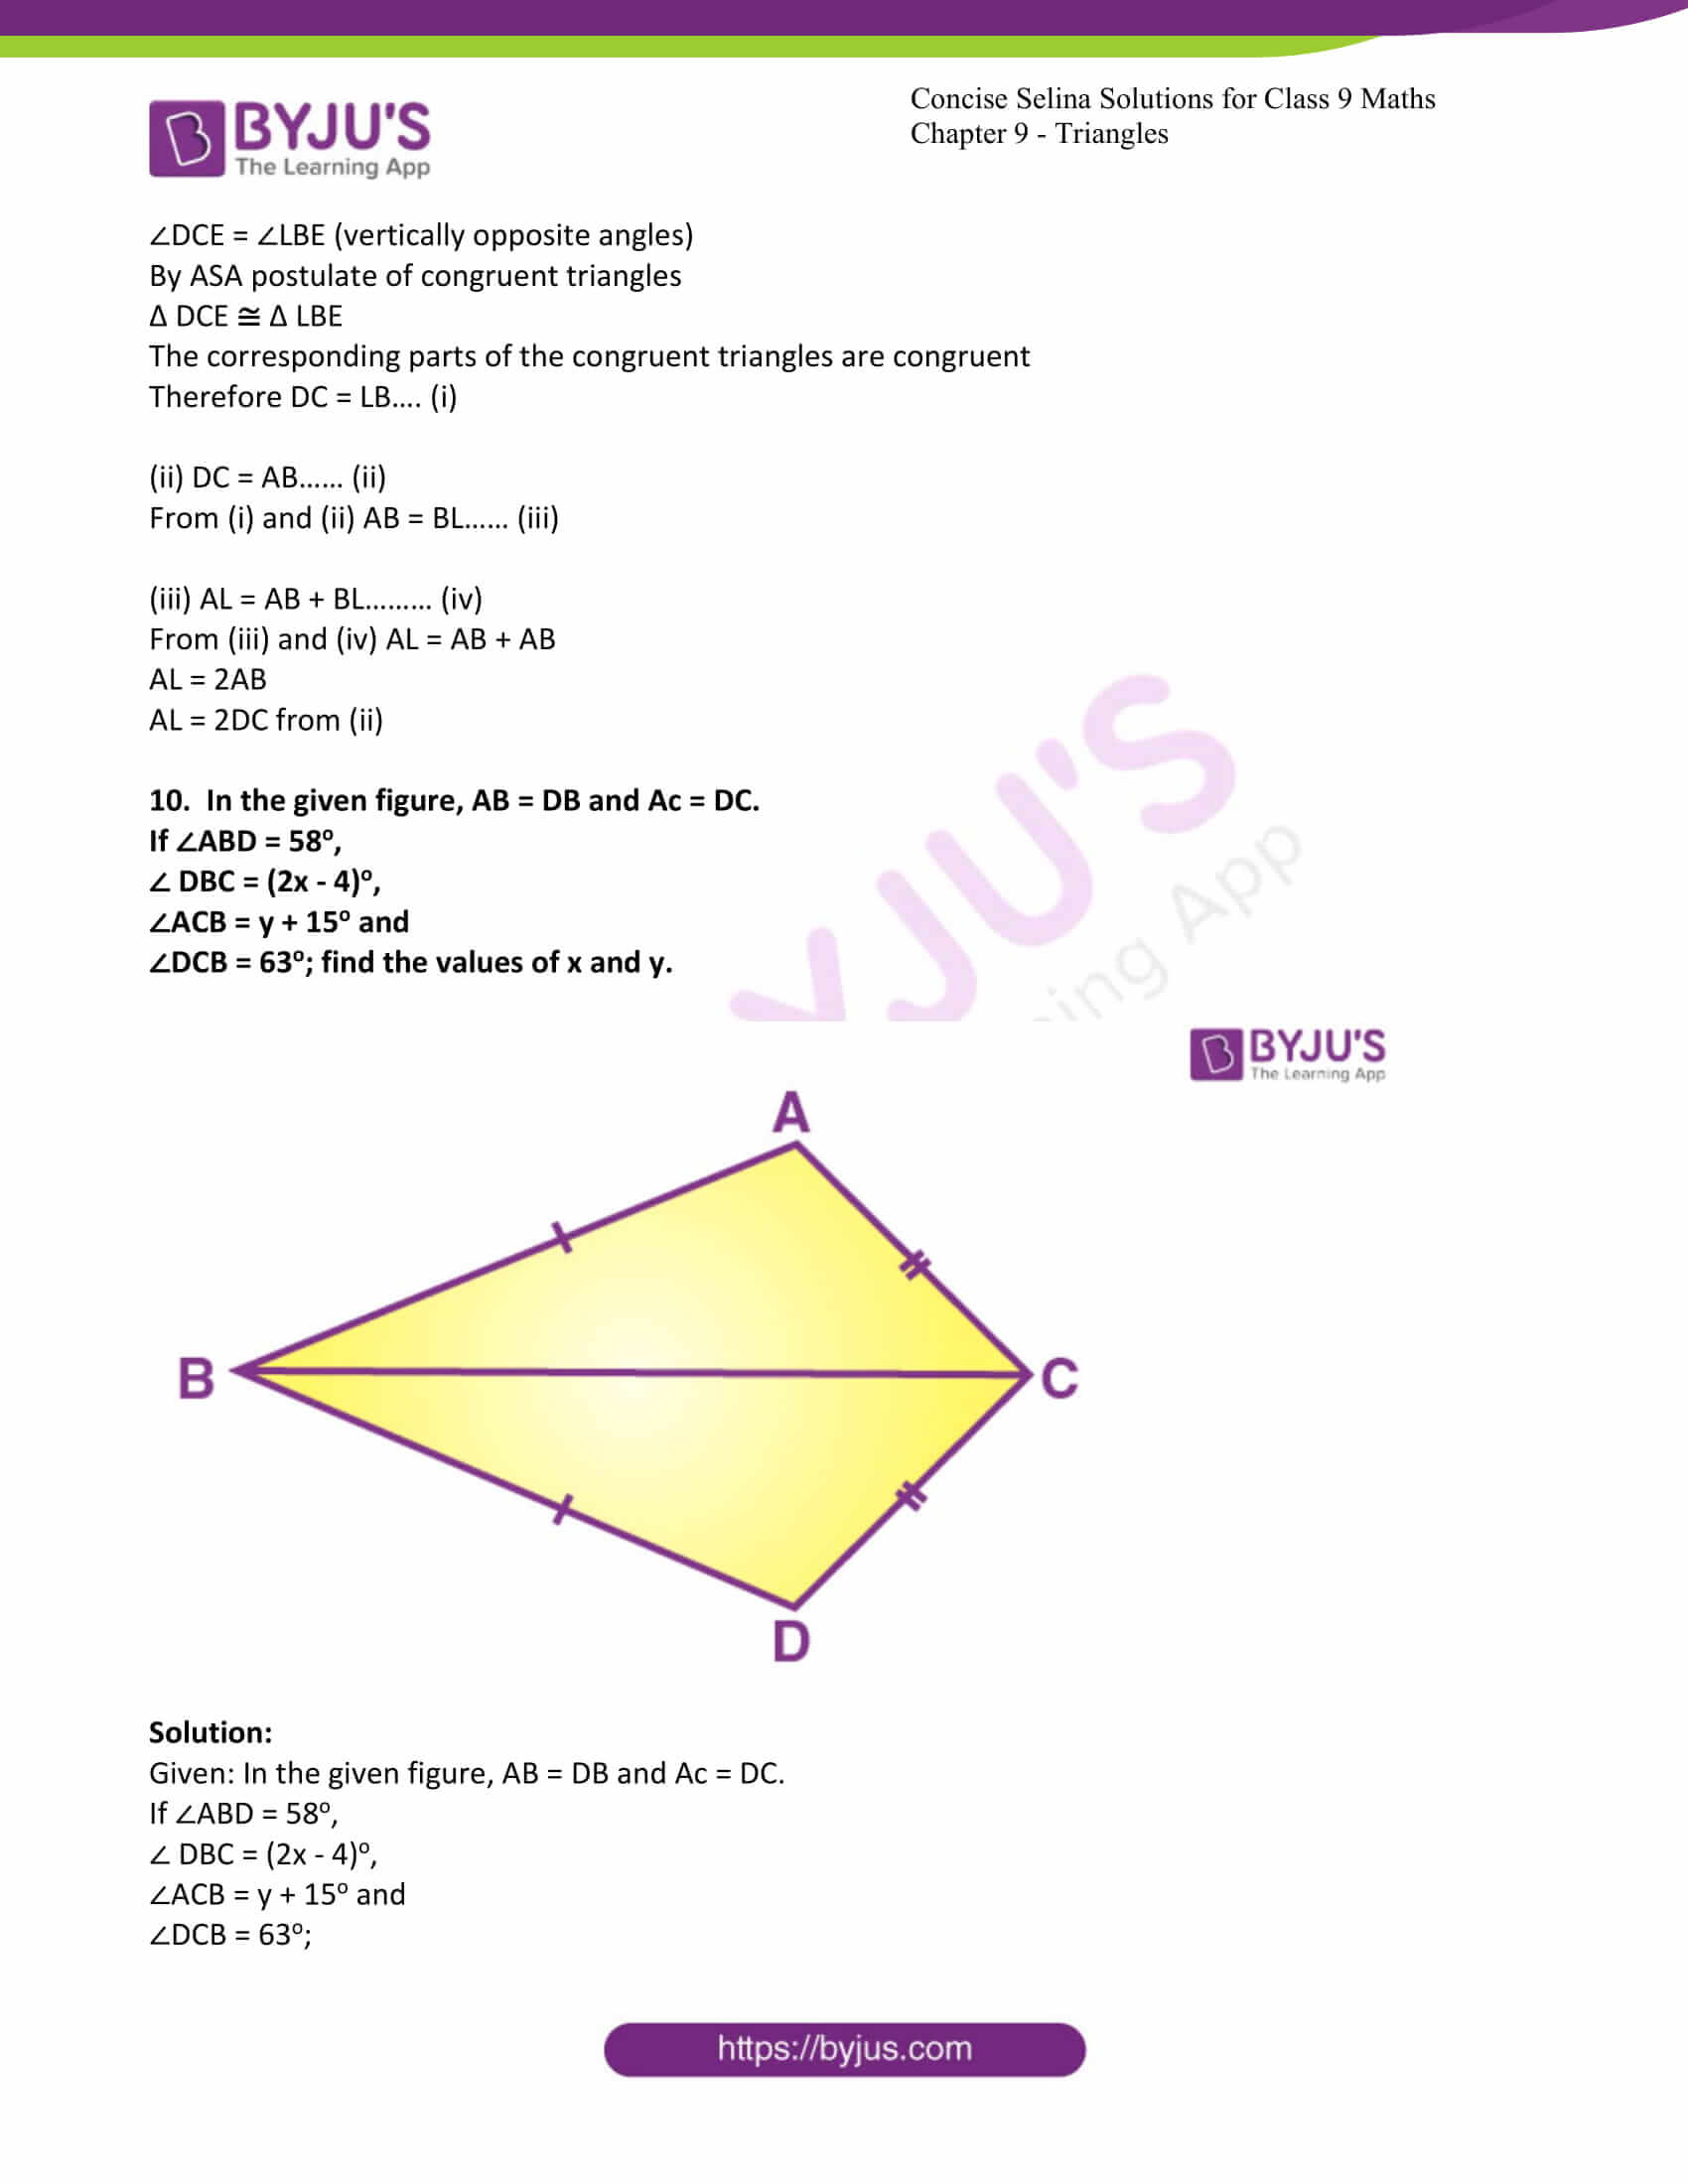 icse class 9 maths may10 selina solutions chapter 9 triangles 15